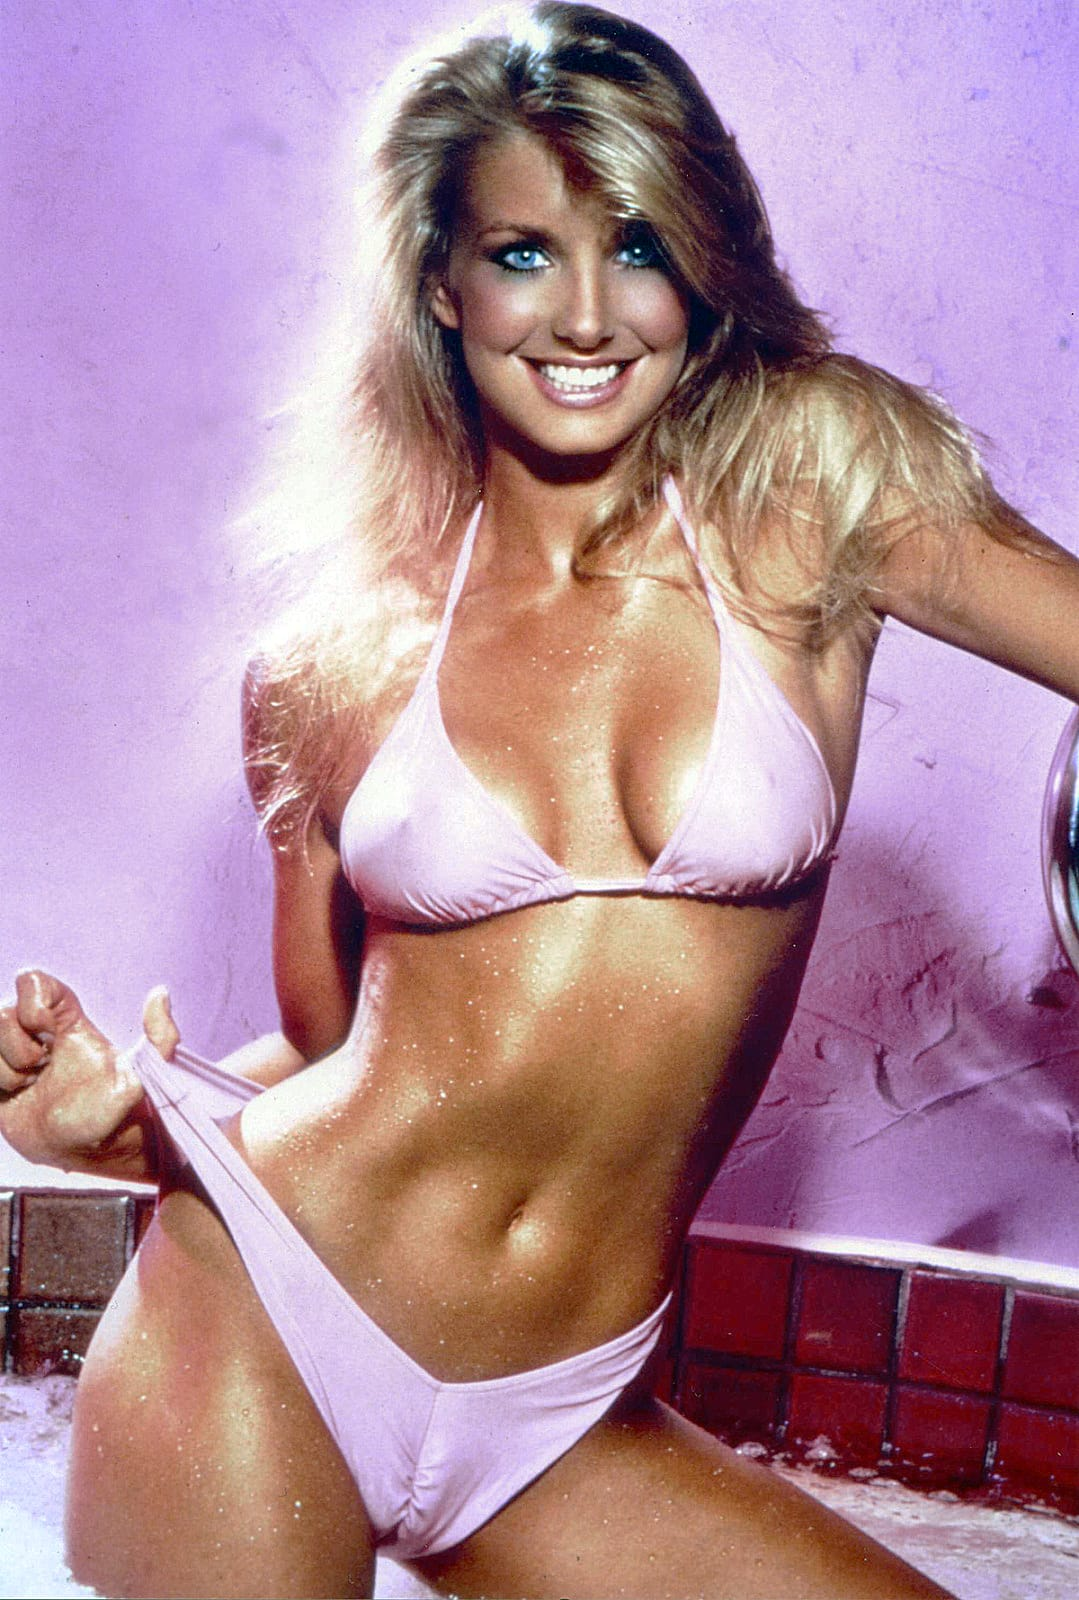 heather thomas nowheather thomas bio, heather thomas wikipedia, heather thomas vs heather locklear, heather thomas facebook, heather thomas filmography, heather thomas instagram, heather thomas nick diaz, heather thomas, heather thomas poster, heather thomas 2015, heather thomas net worth, heather thomas now, heather thomas hot, heather thomas age, heather thomas zapped, heather thomas heute, heather thomas bikini, heather thomas playboy